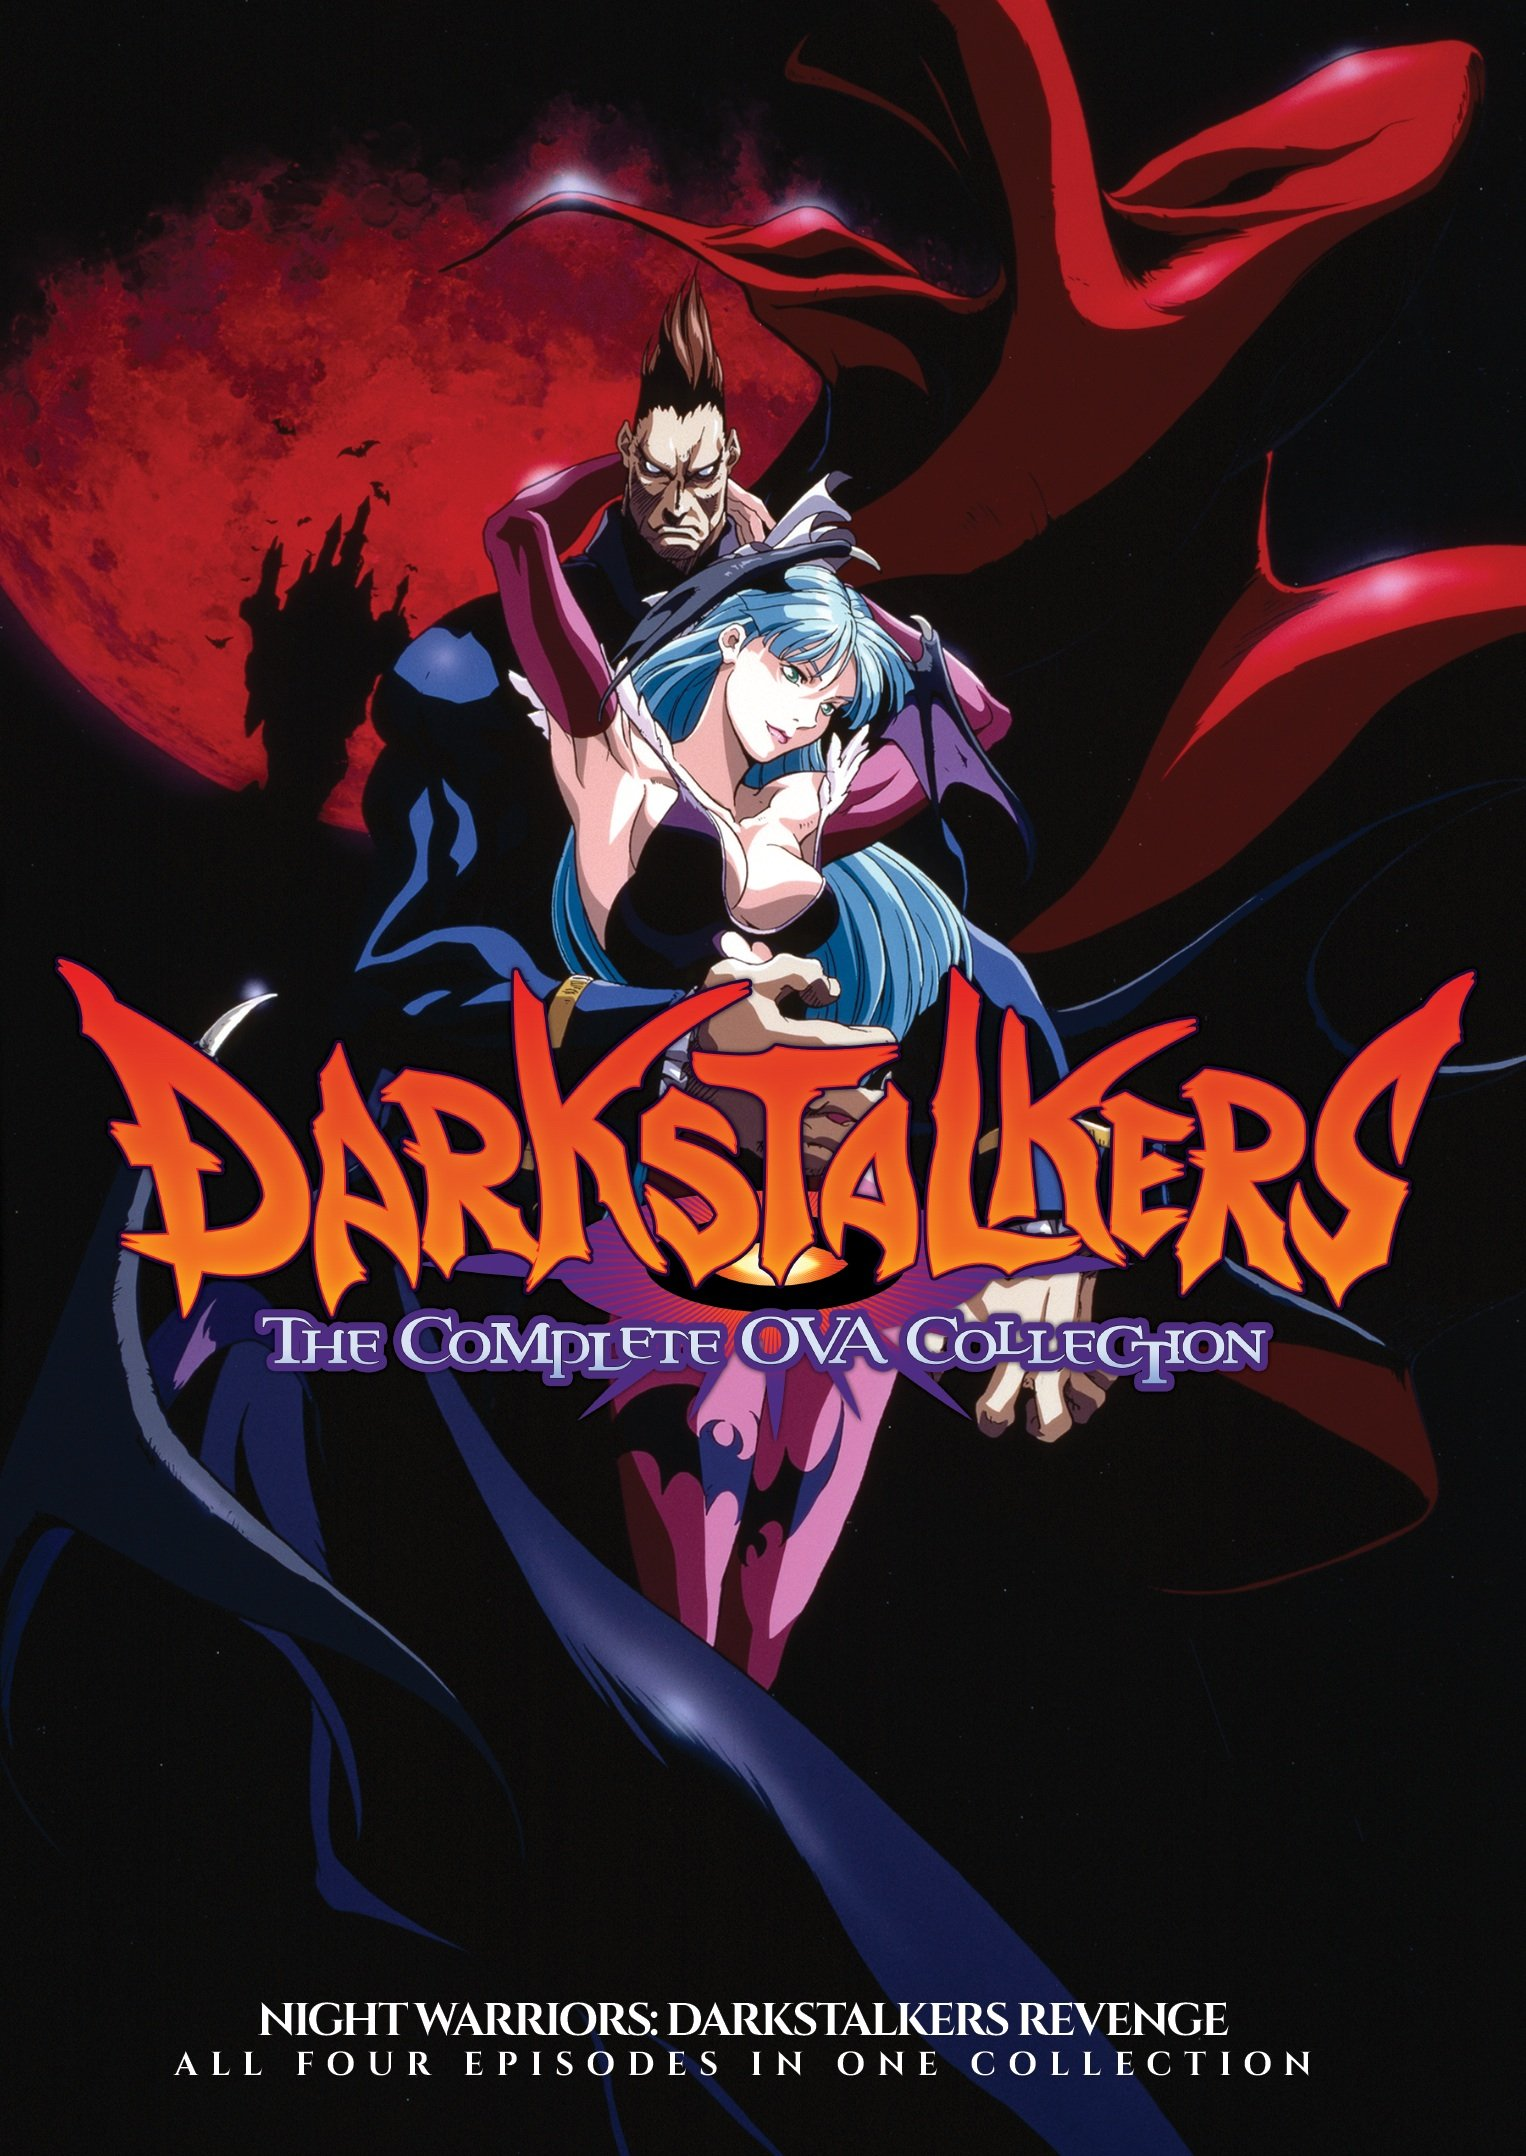 DVD : Night Warriors: Darkstalker's Revenge Ova Collection (2 Disc)